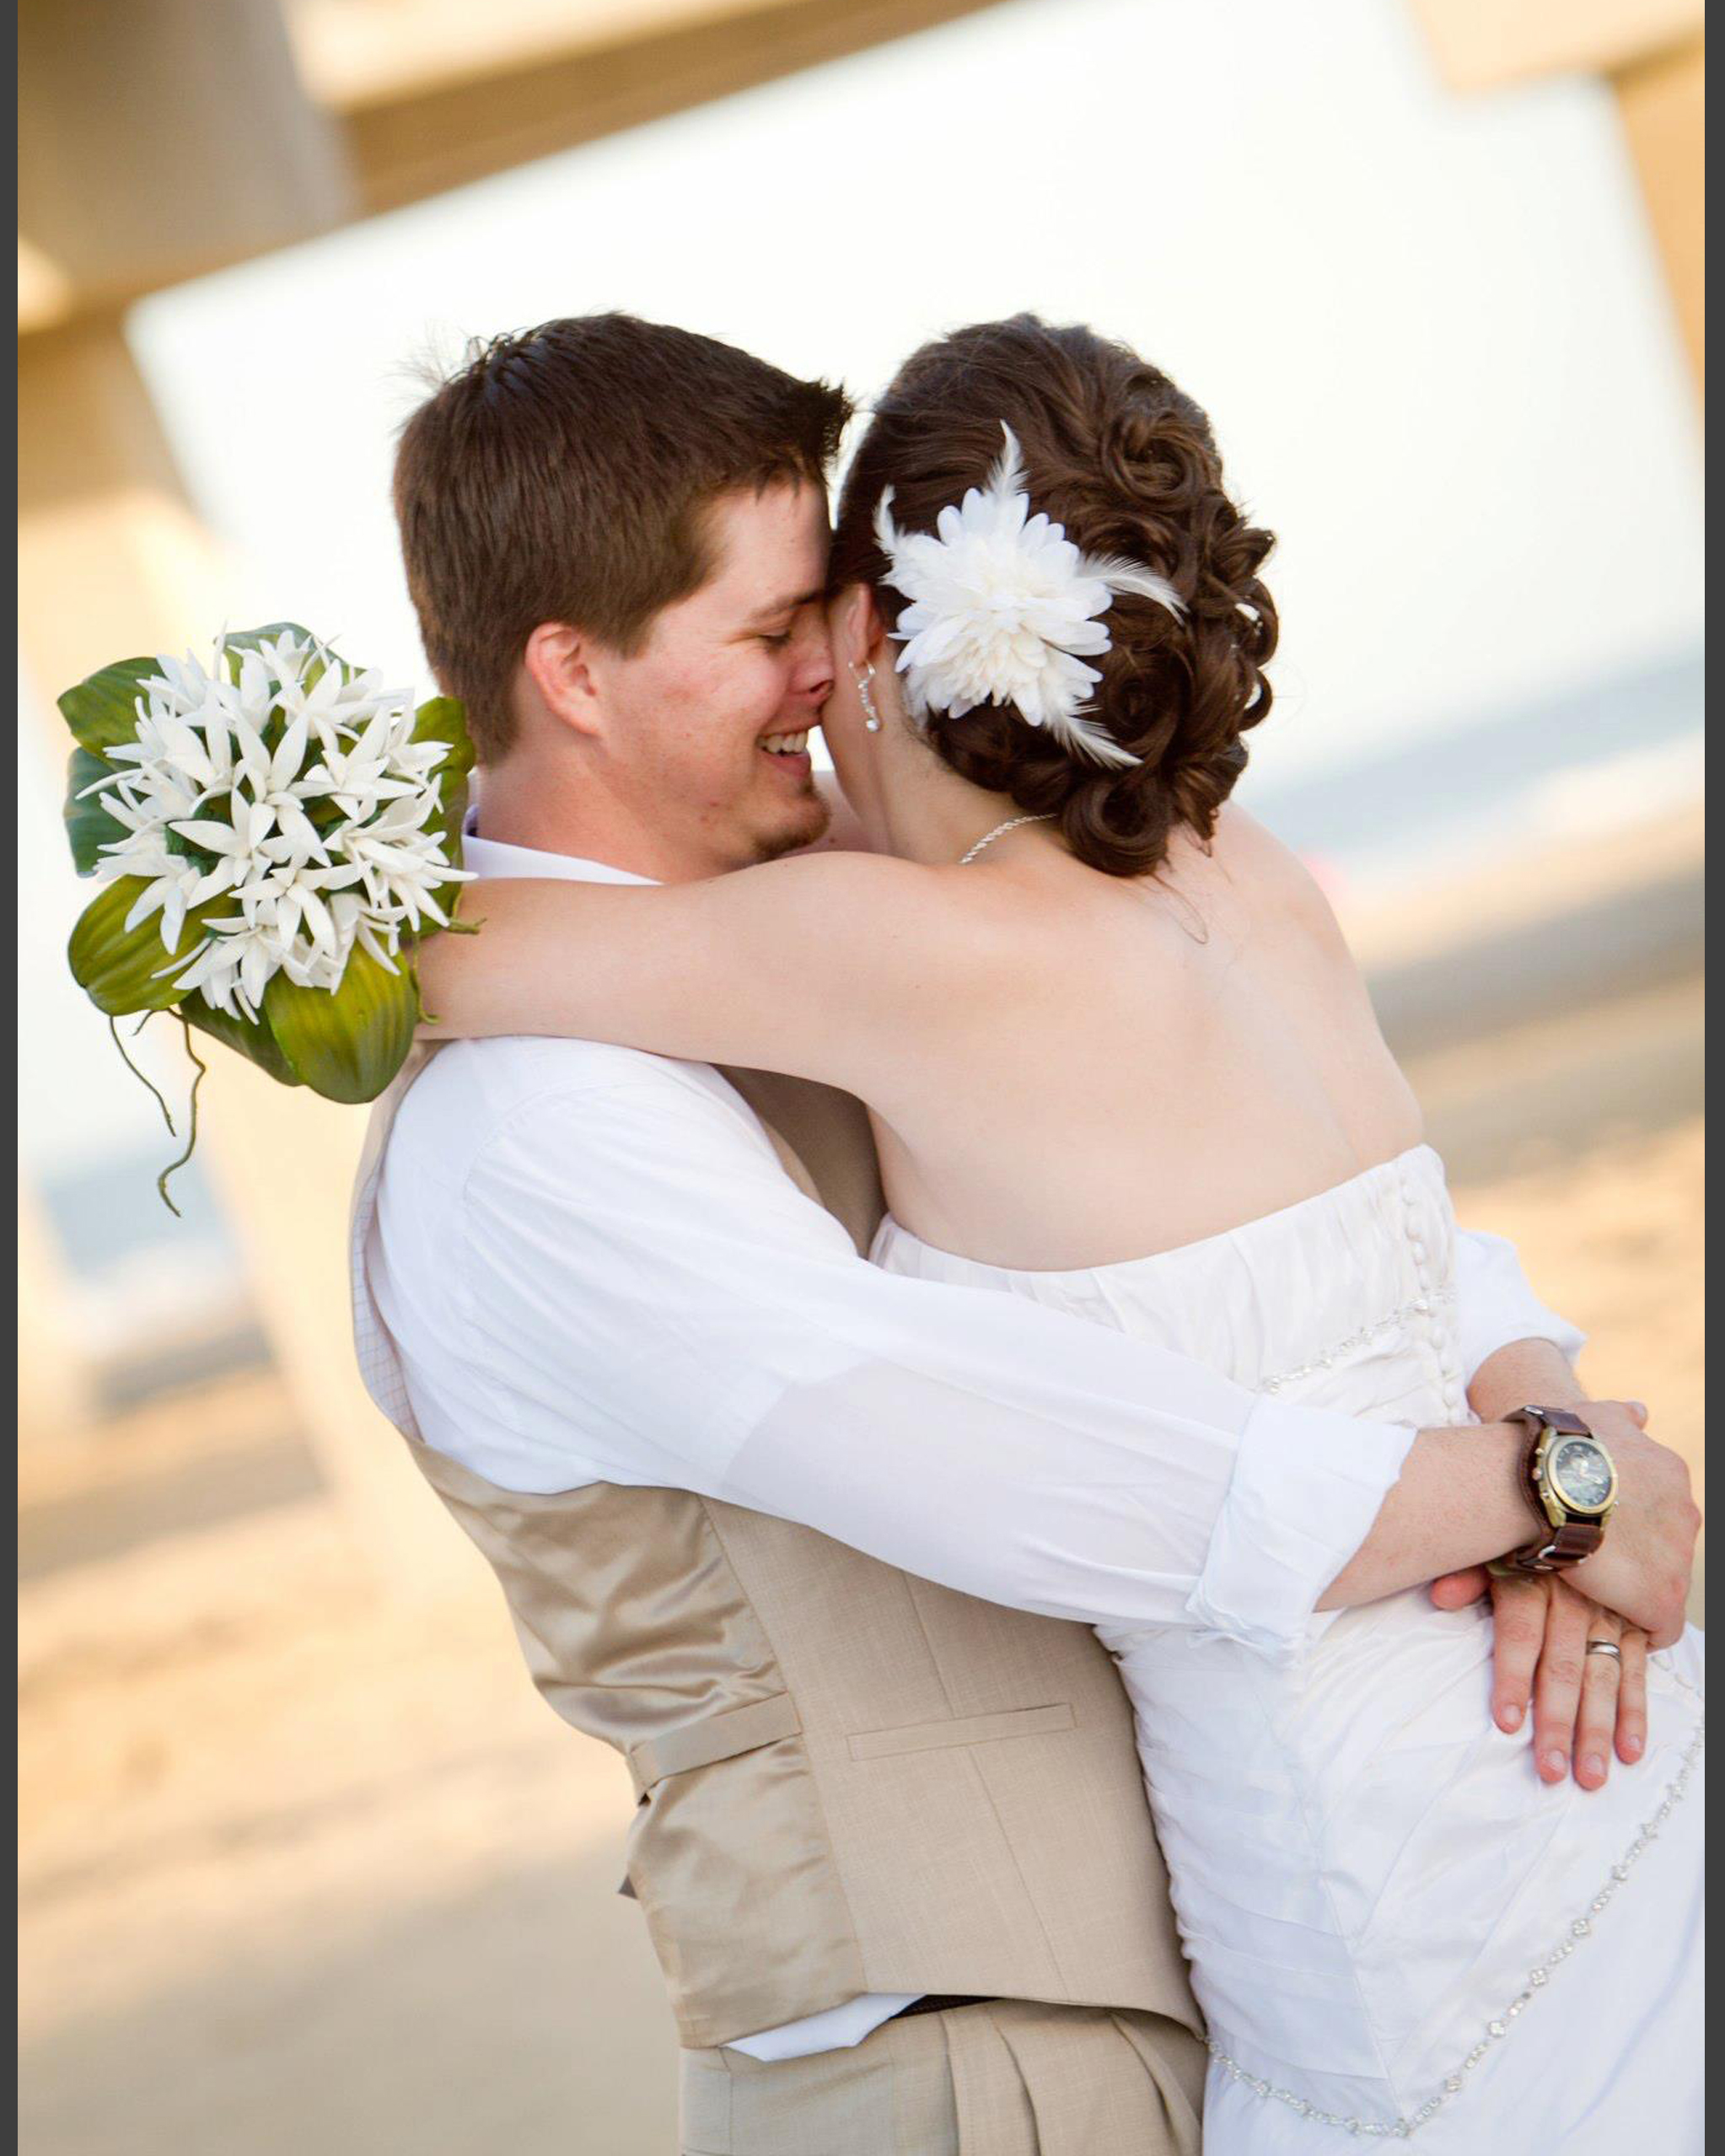 white orchid wedding 8x10.jpg